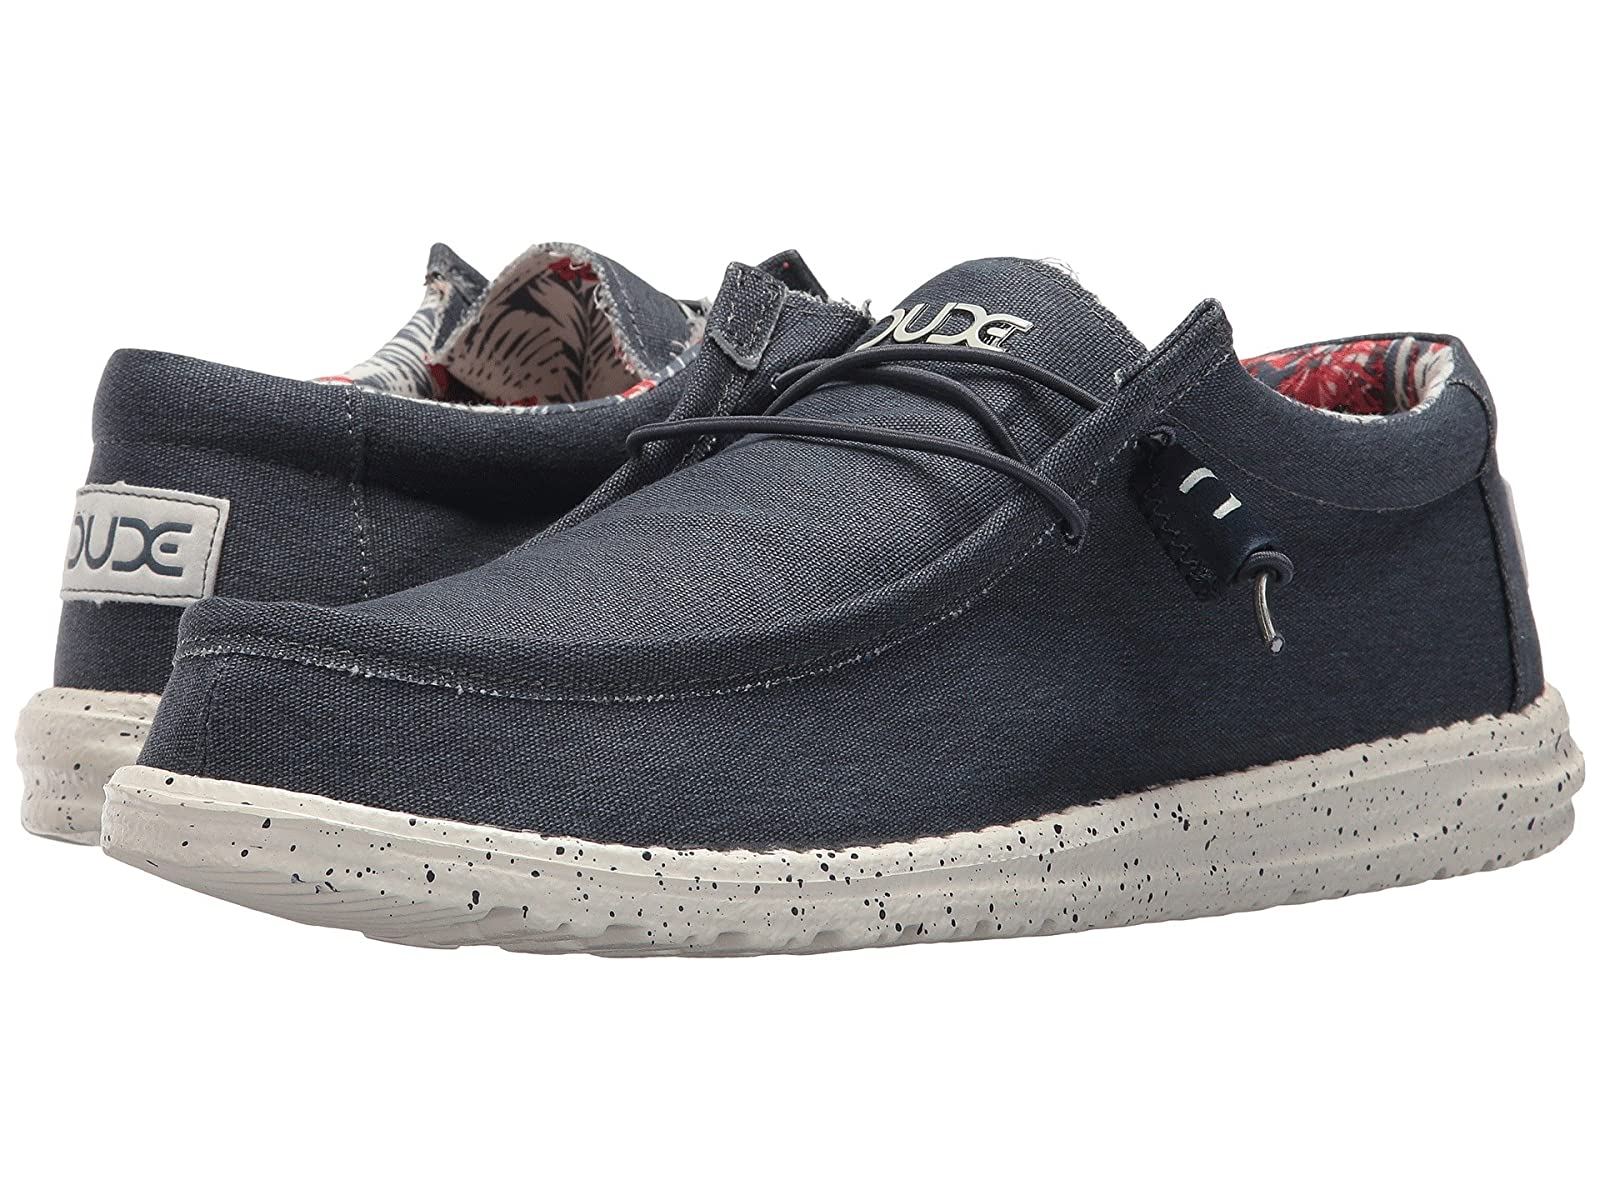 Hey Dude Wally StretchAtmospheric grades have affordable shoes